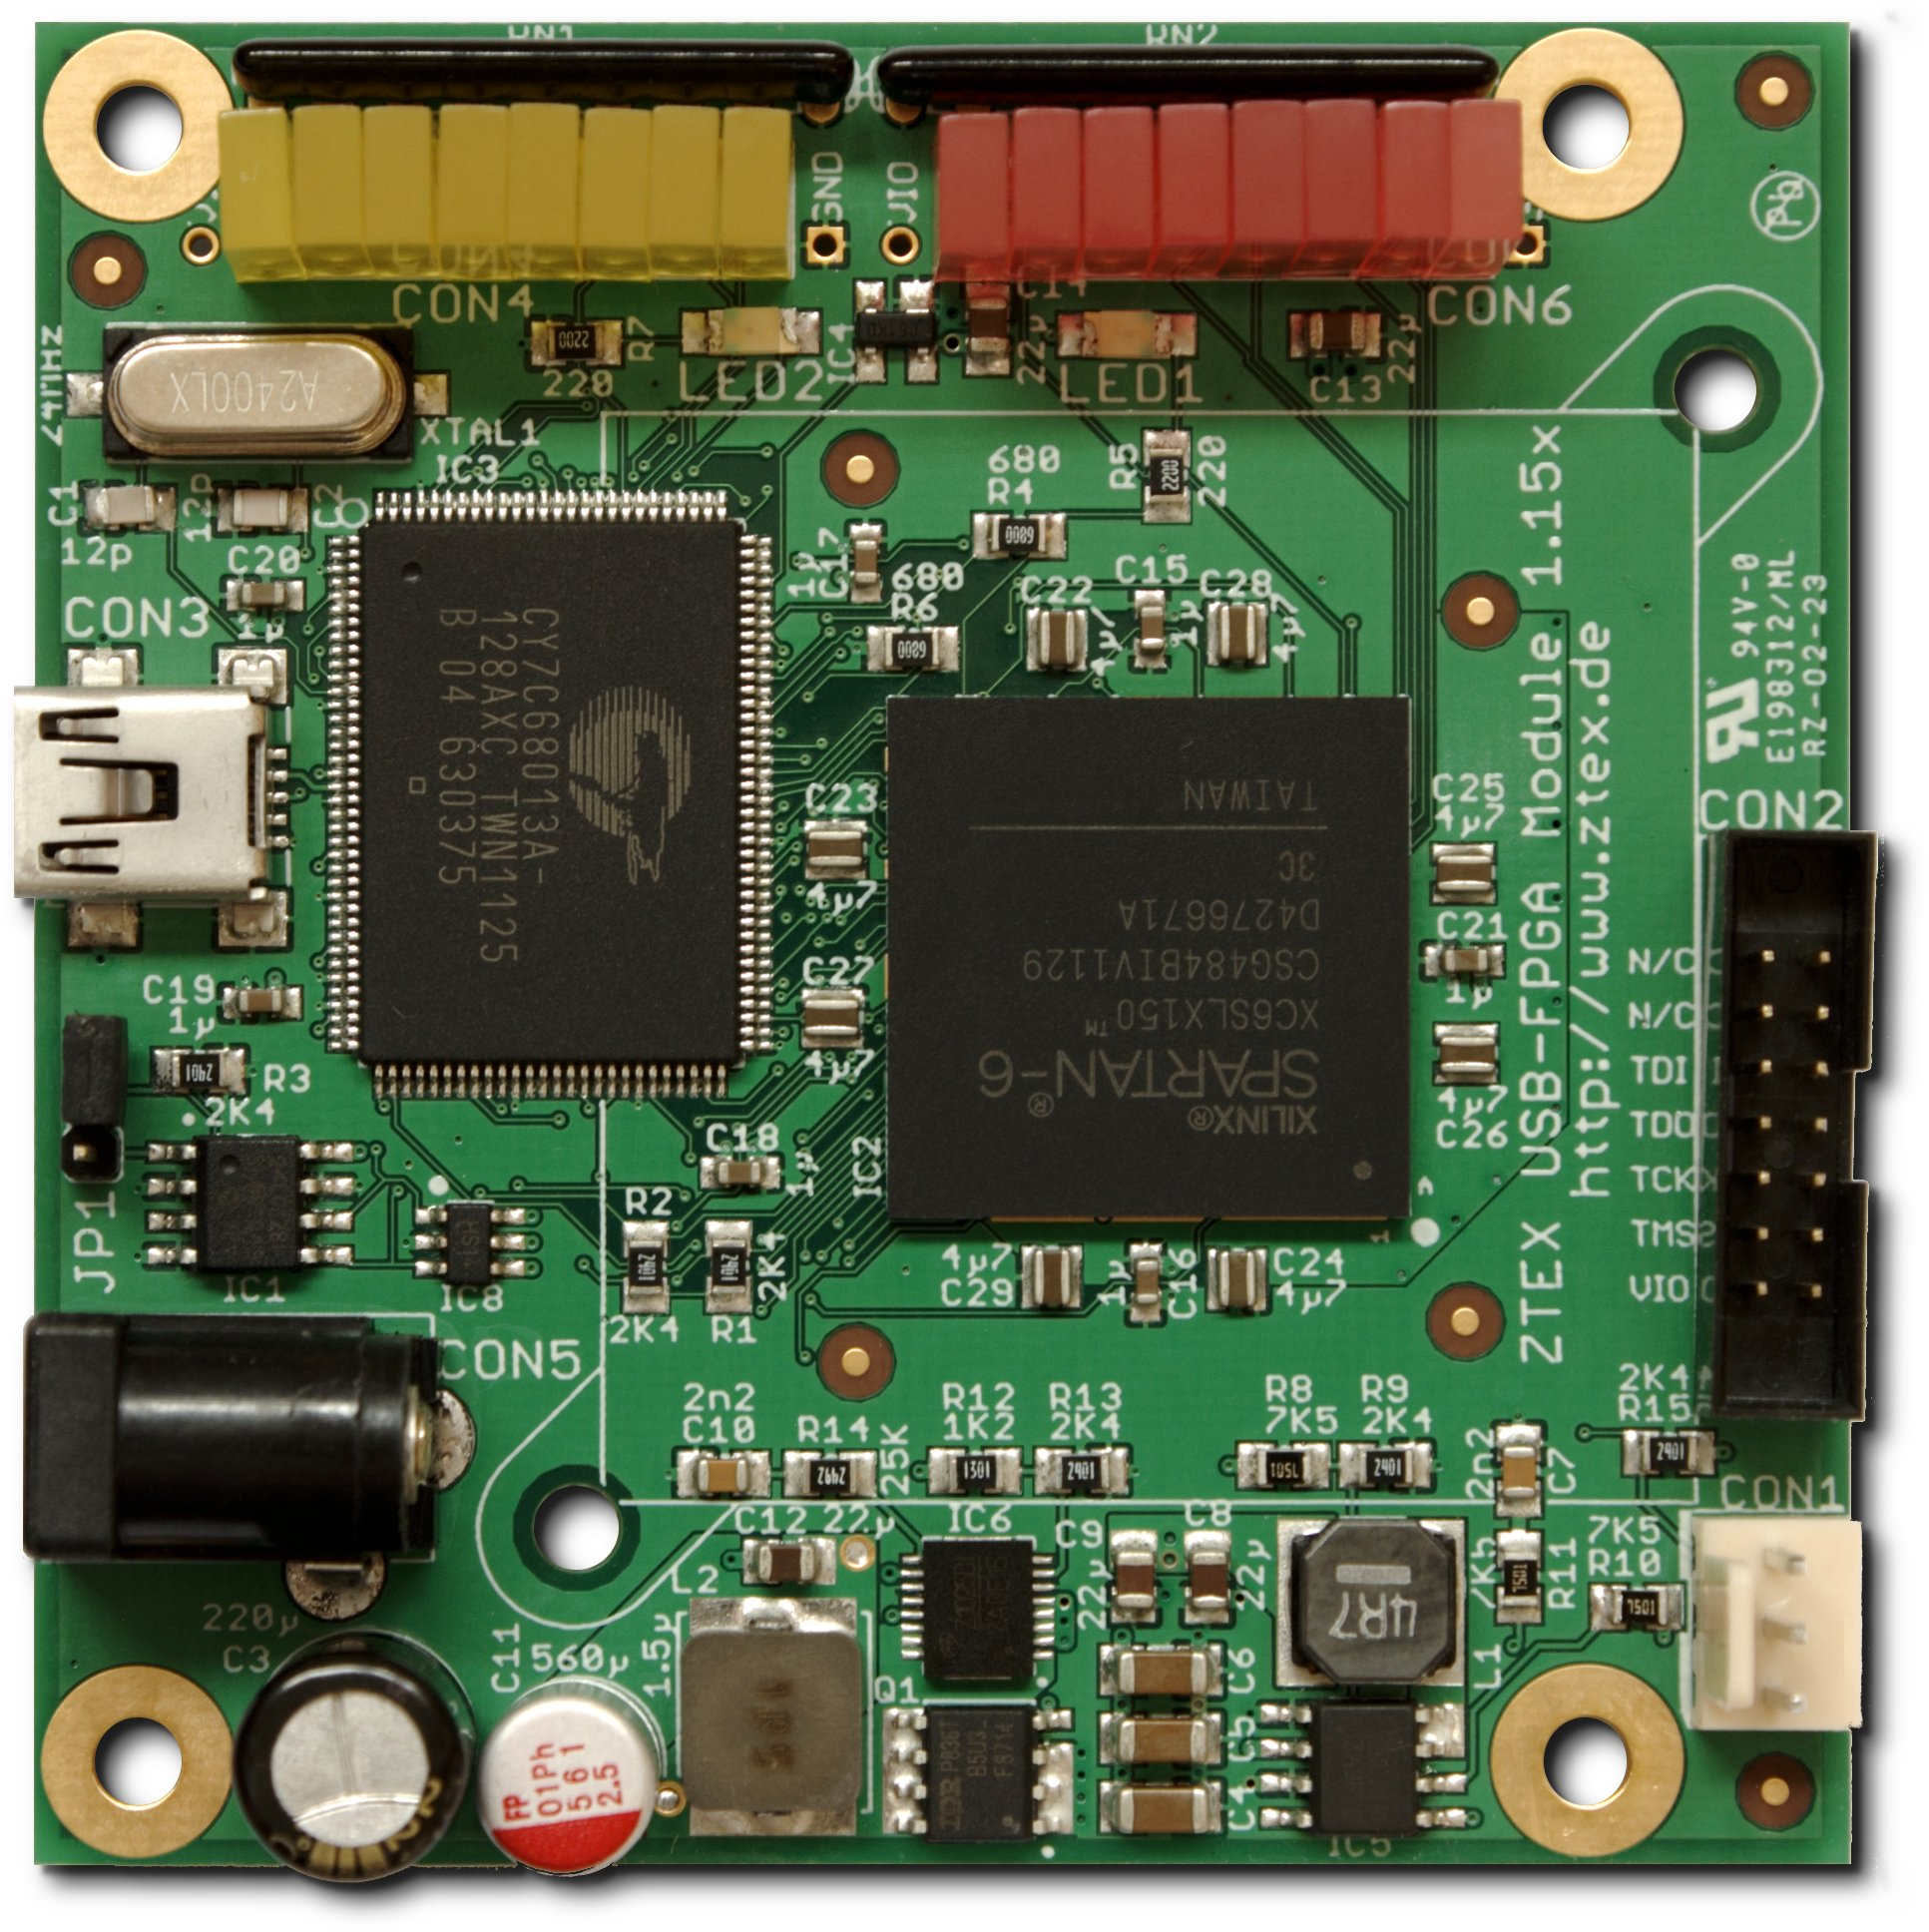 USB-FPGA Module 1 15x: Spartan 6 LX150 FPGA Board with USB 2 0